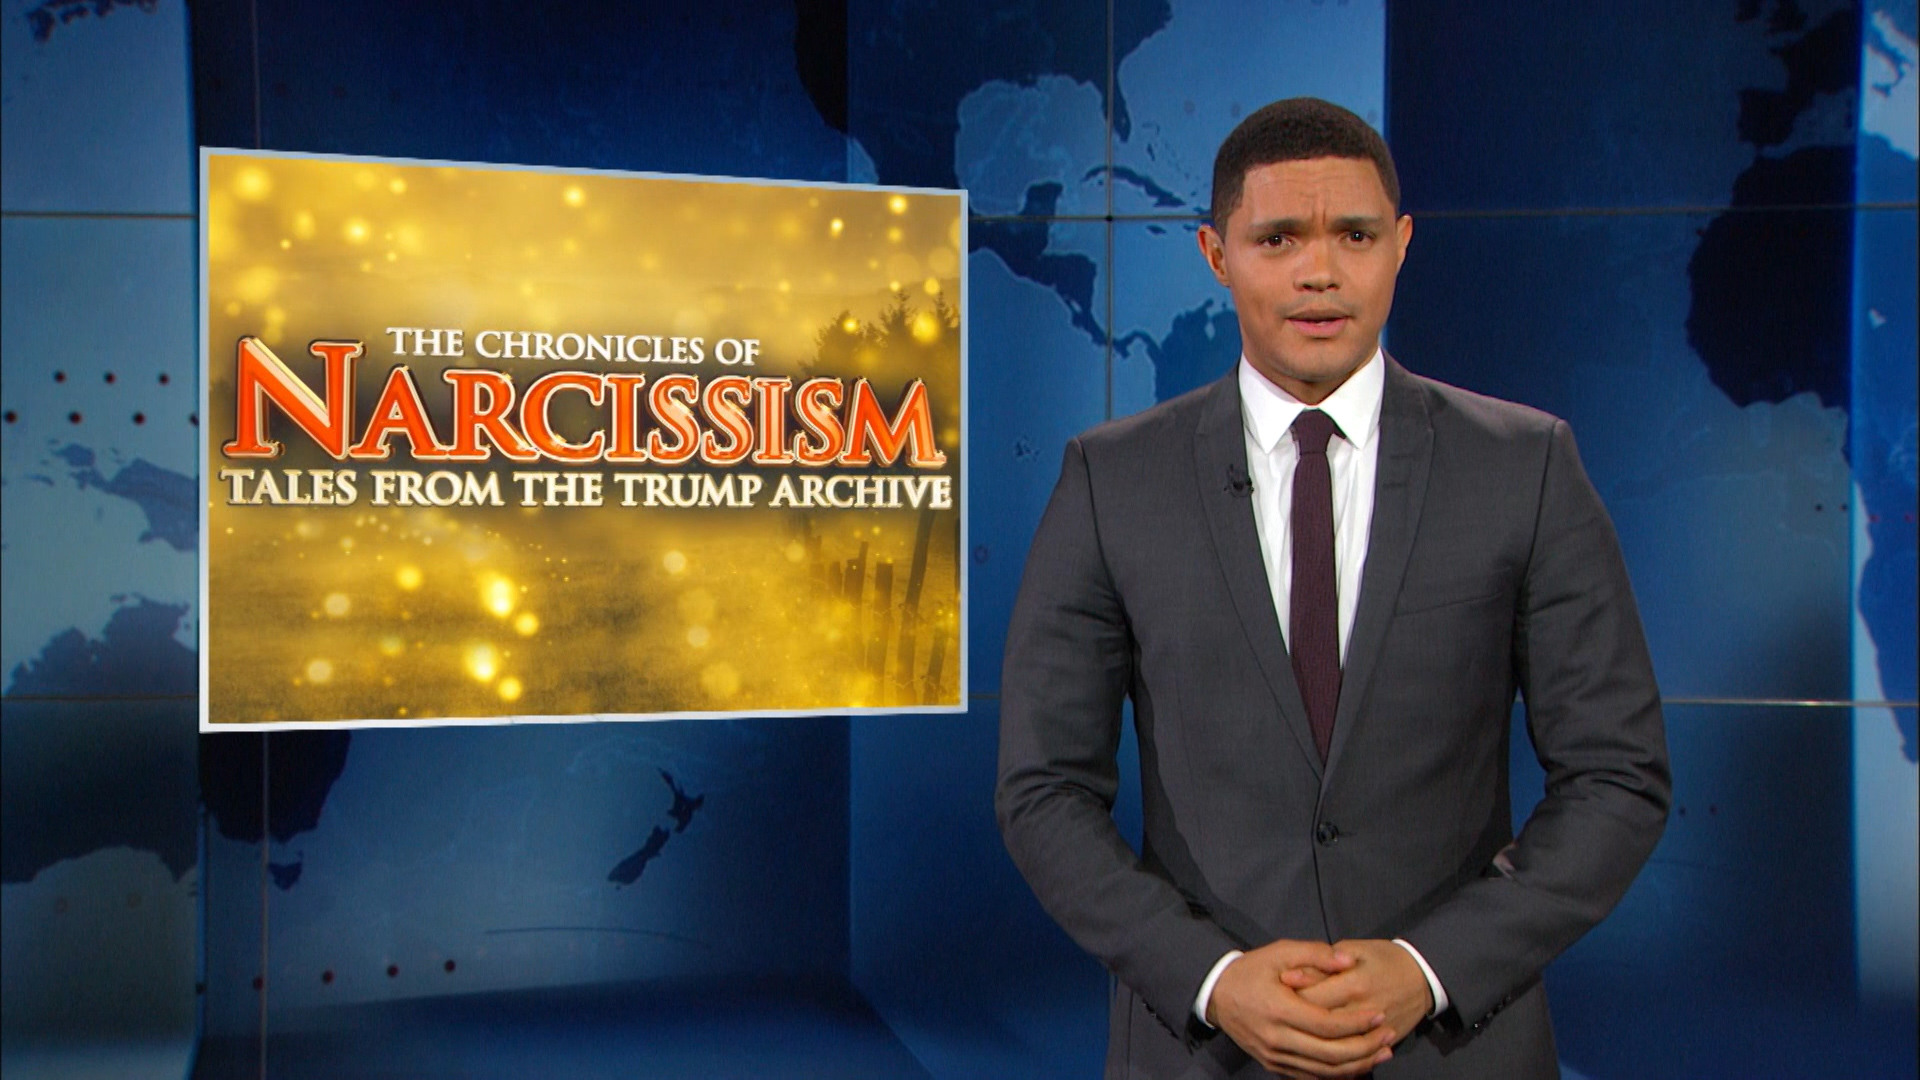 THE DAILY SHOW - DONALD TRUMP'S HISTORY OF CHAUVINISTIC RHETORIC